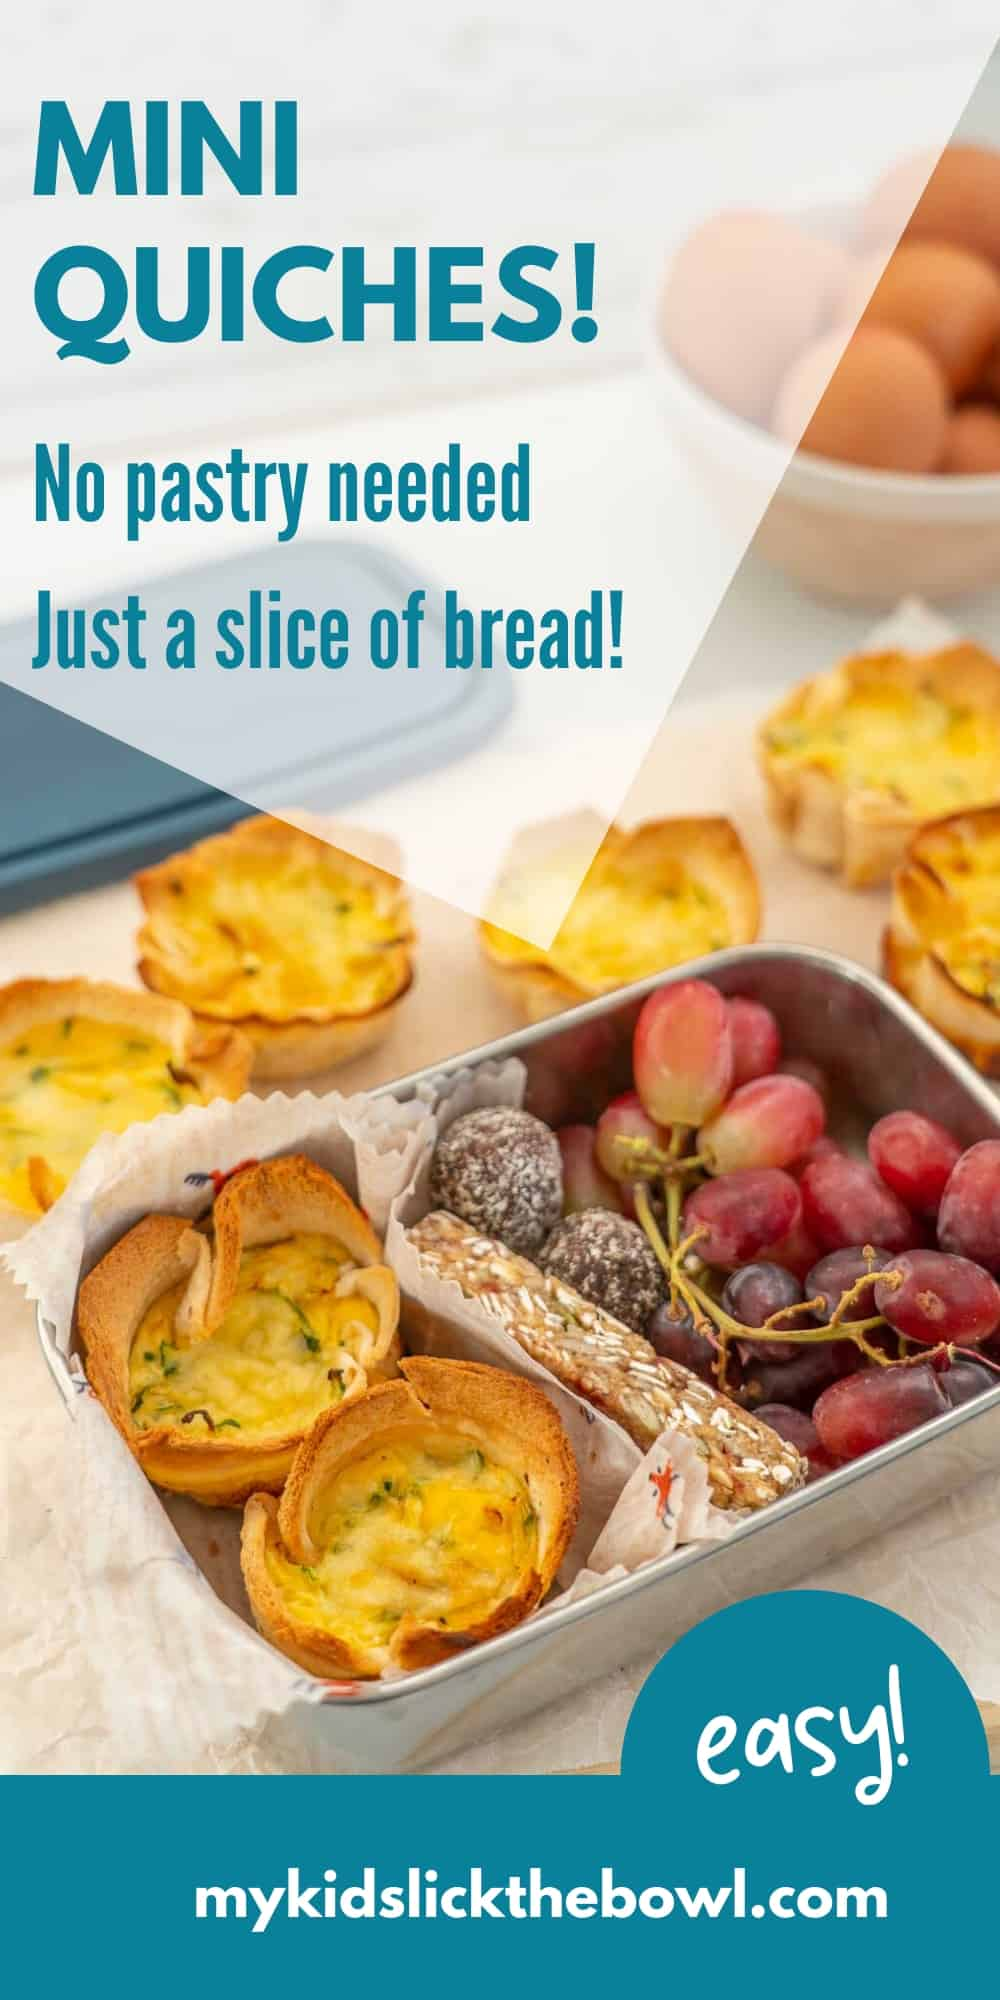 mini quiches in a lunchbox with a granola bar and grapes, text overlay on the image for pinterest